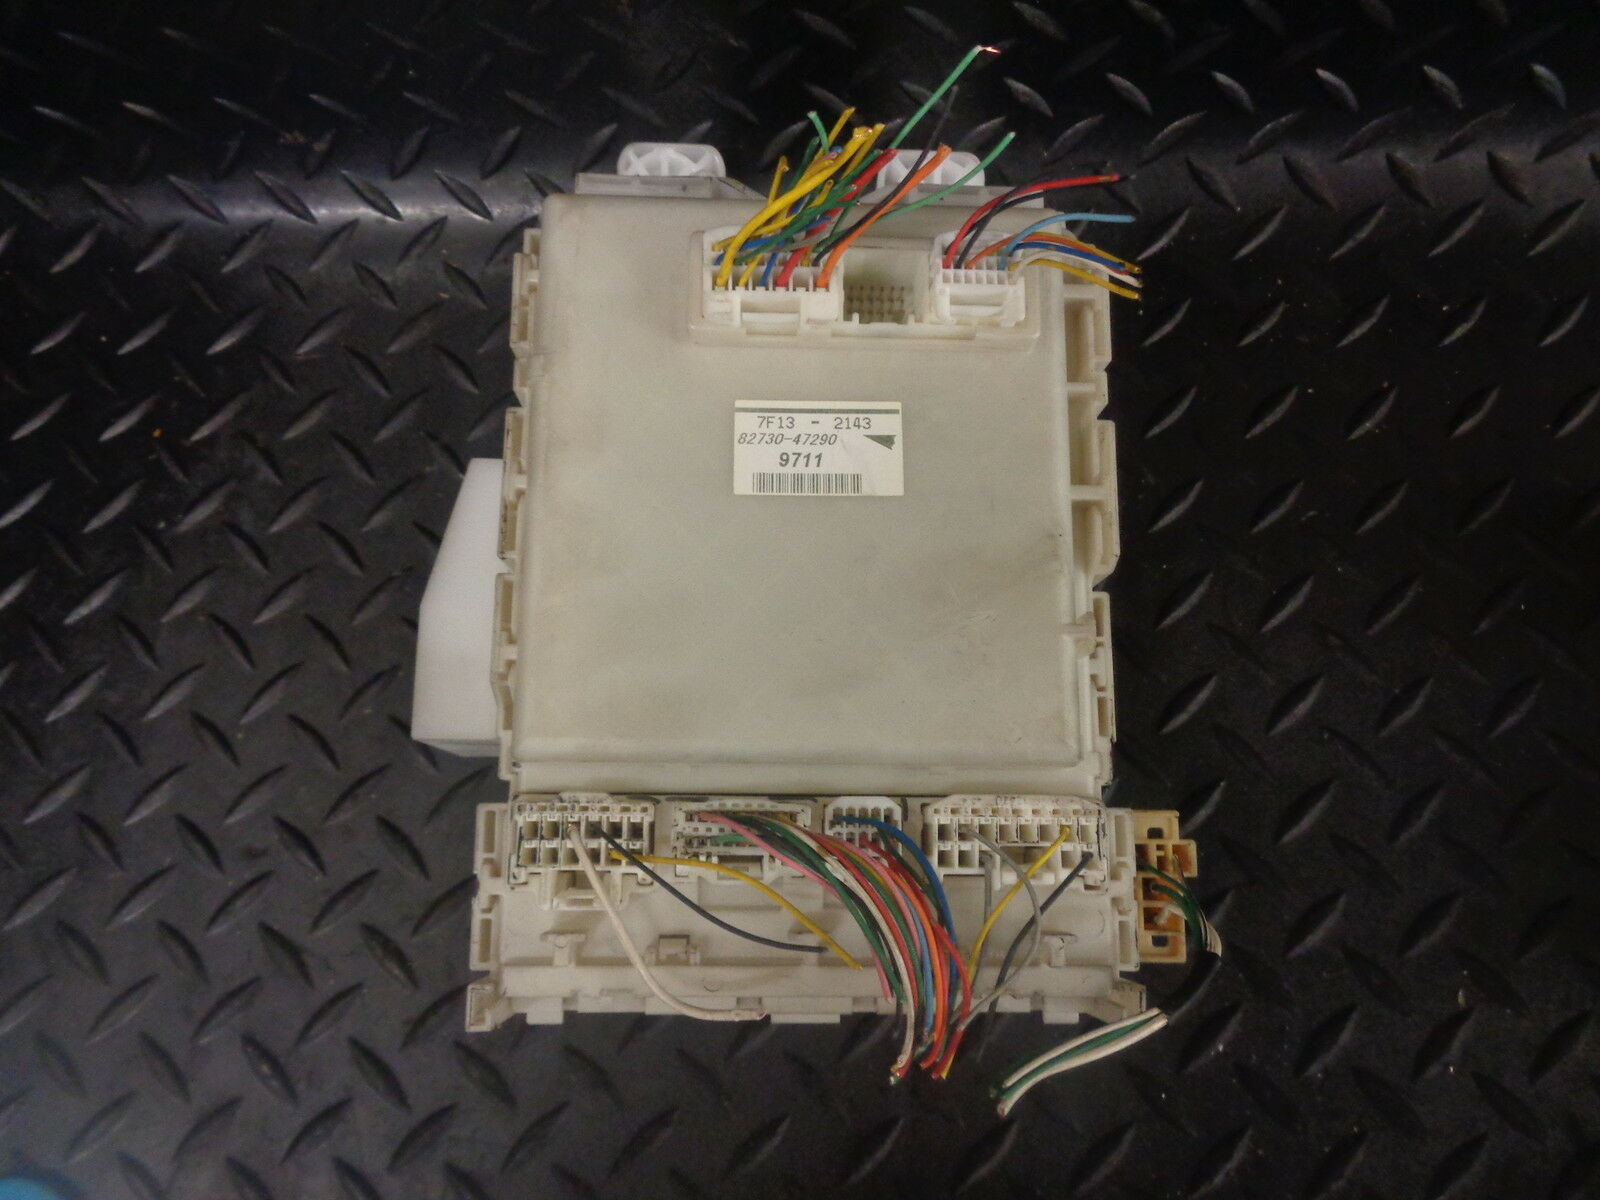 2007 TOYOTA PRIUS 1.5 VVTi T HYBRID 5DR FUSE BOX 82730-47290 1 of 2Only 1  available ...